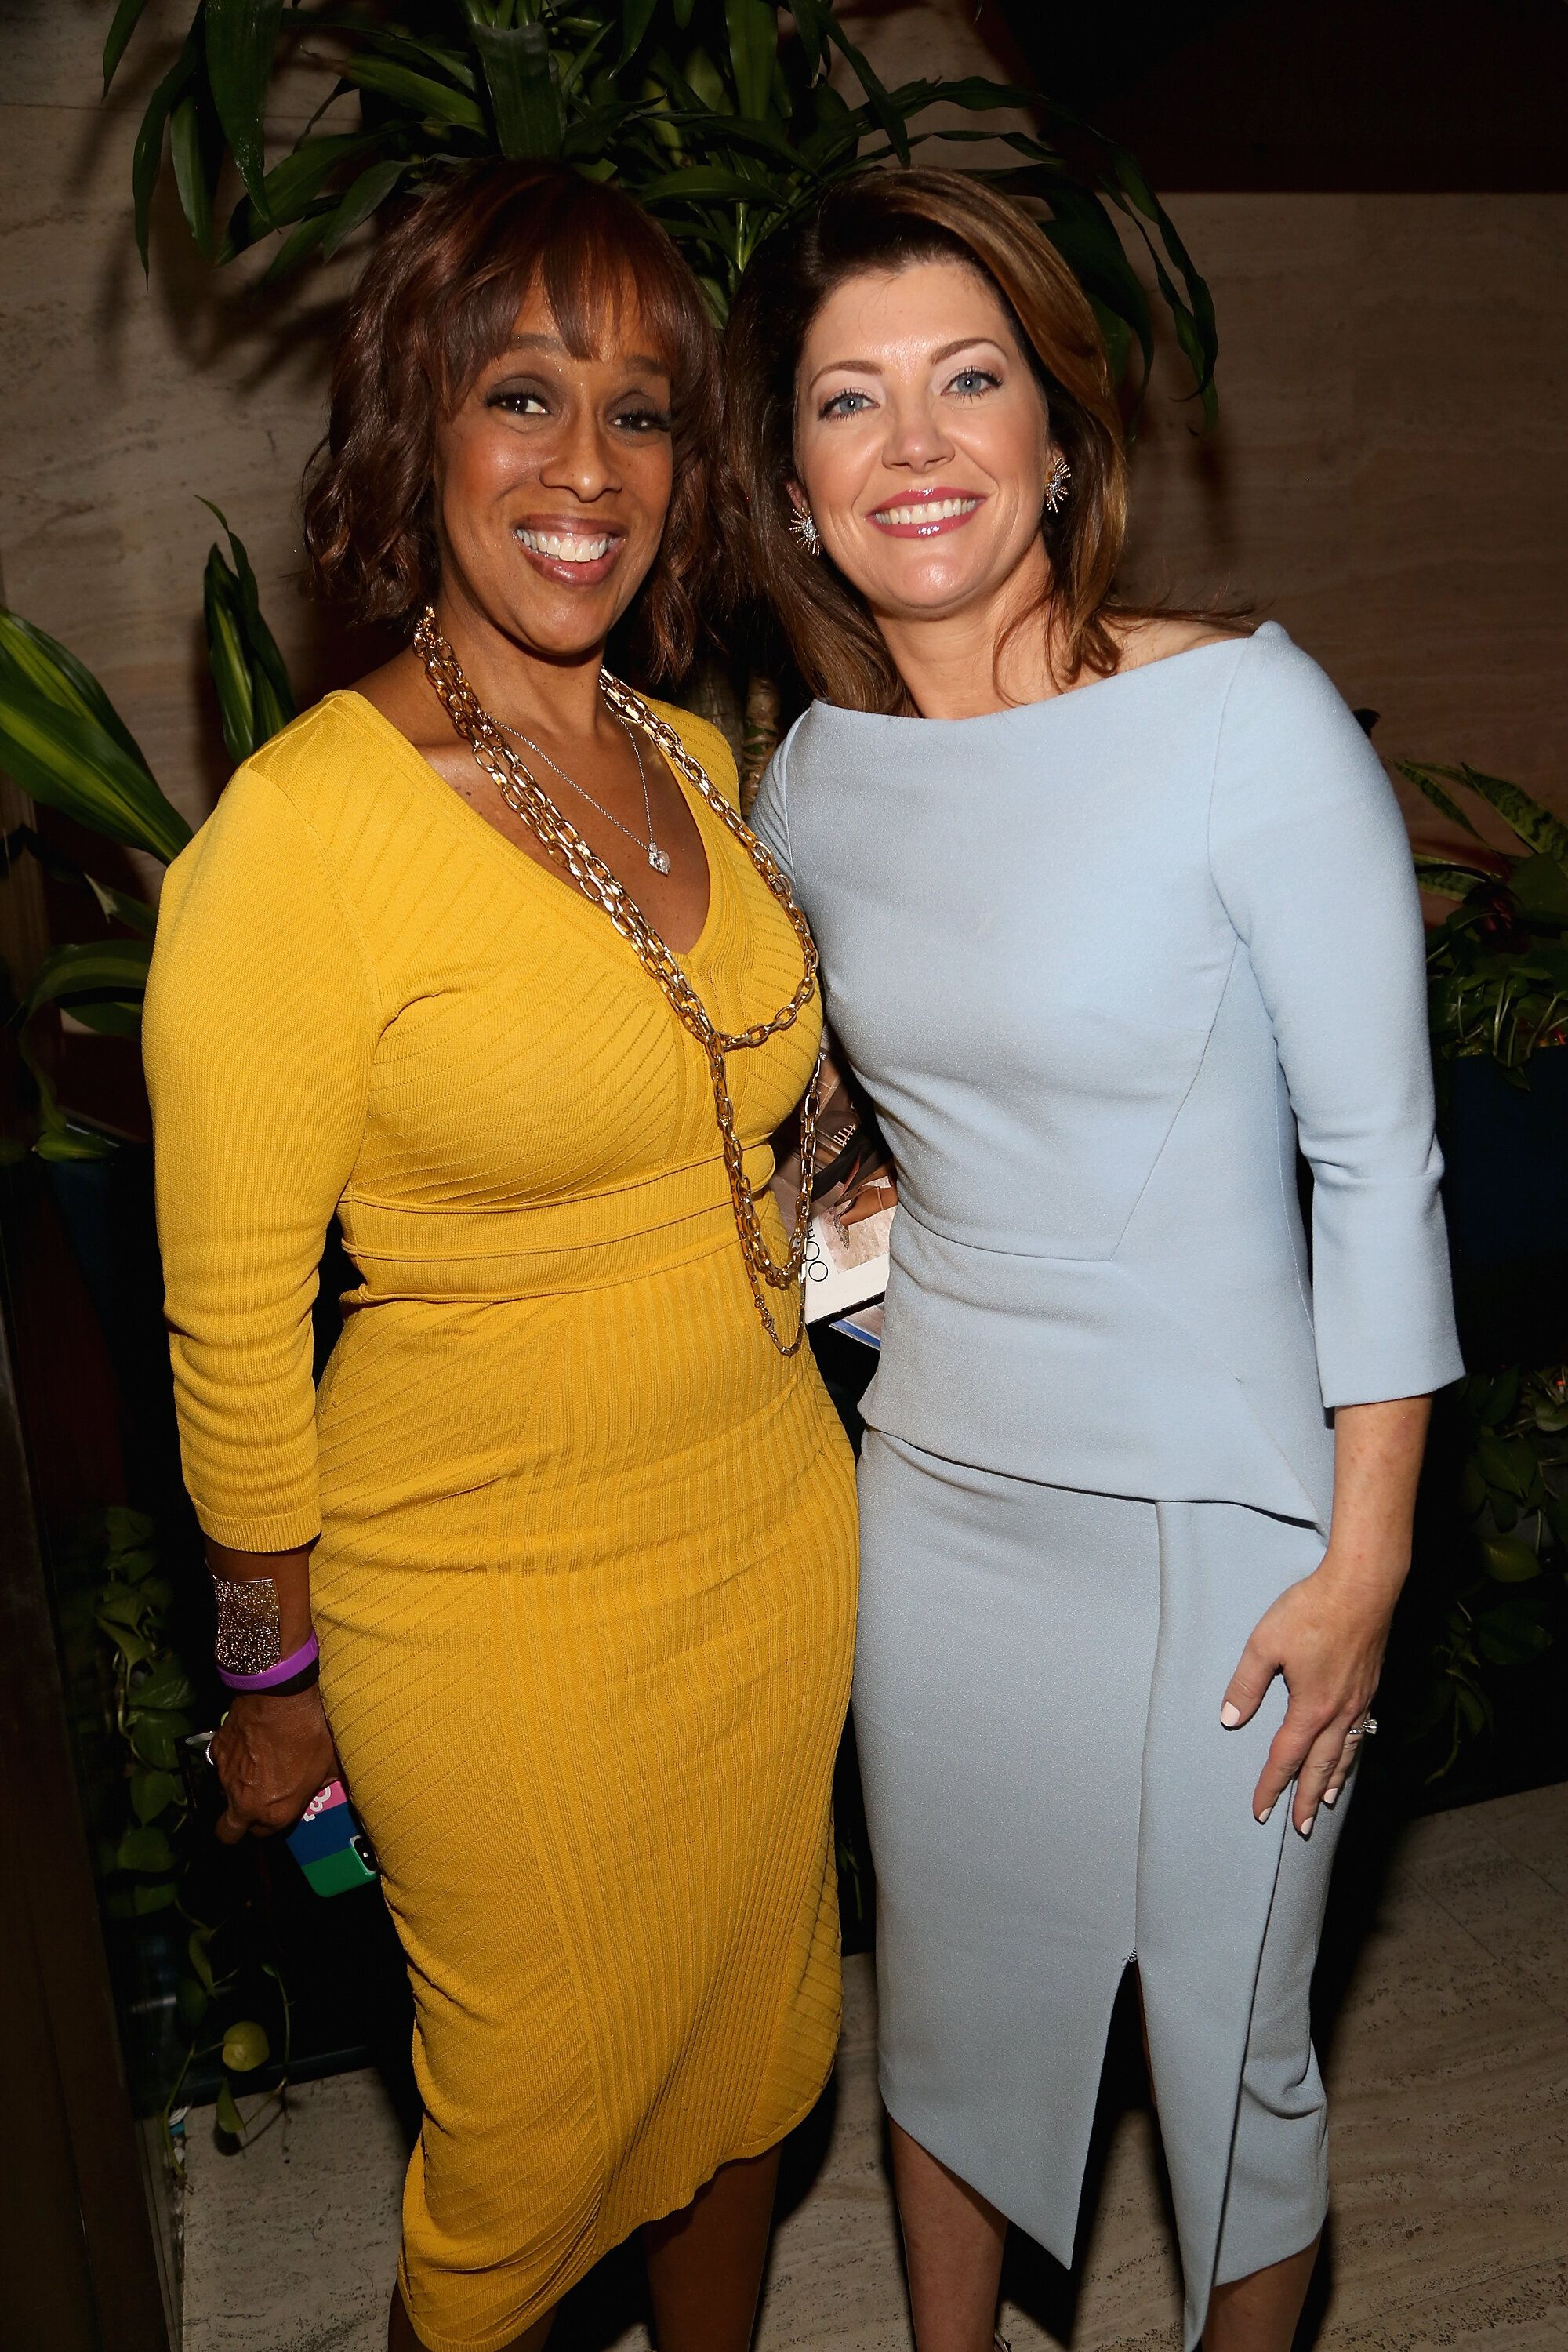 """Gayle King, left, will continue to anchor """"CBS This Morning,"""" and Norah O'Donnell, right, will likely move to """"CBS Evening Ne"""